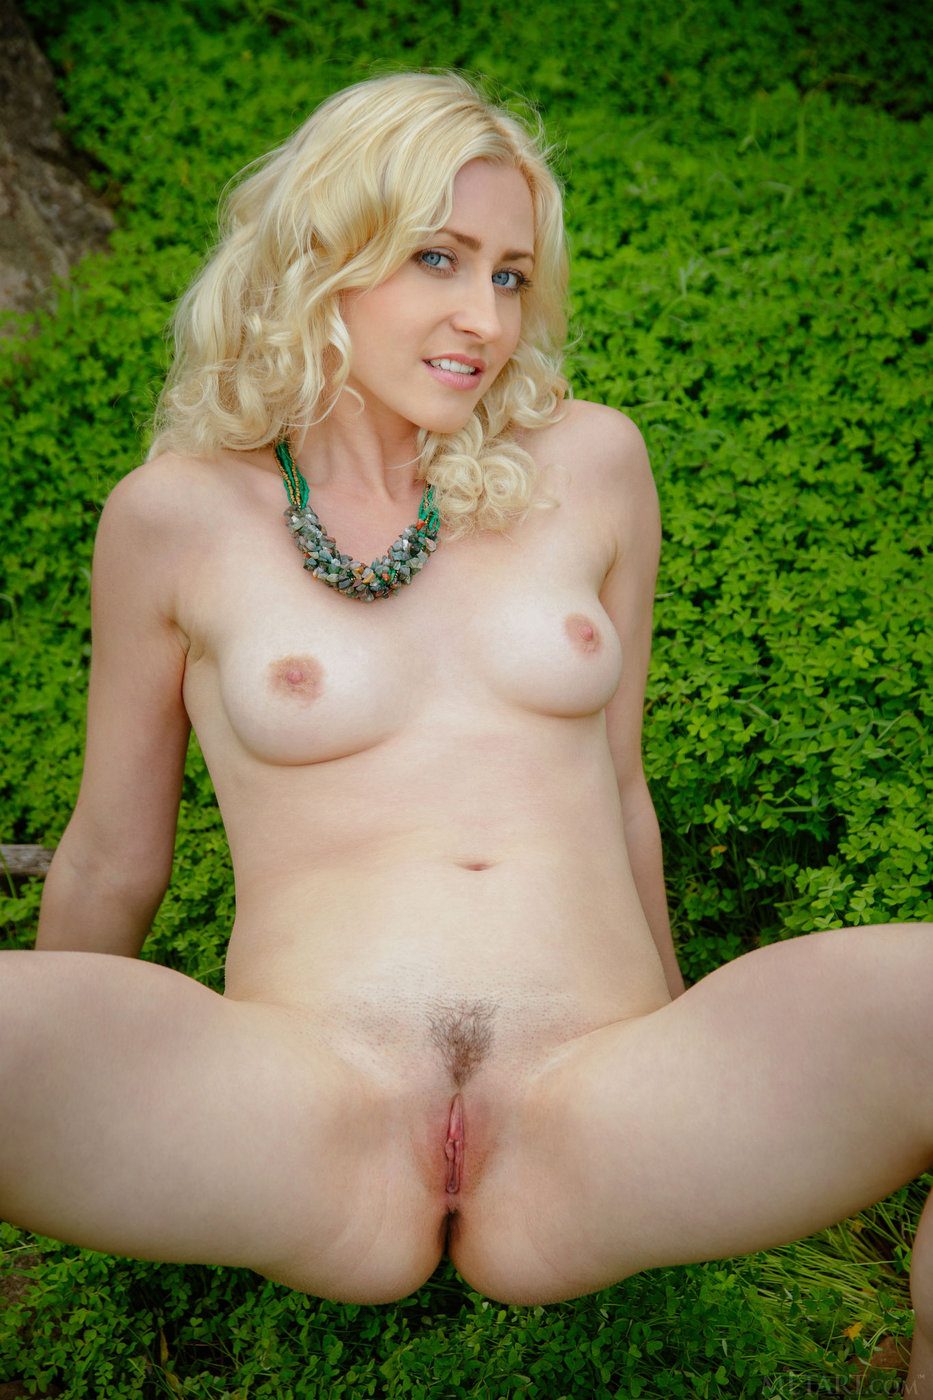 naked-in-the-grass-pics-free-download-and-watch-pornpussy-vedios